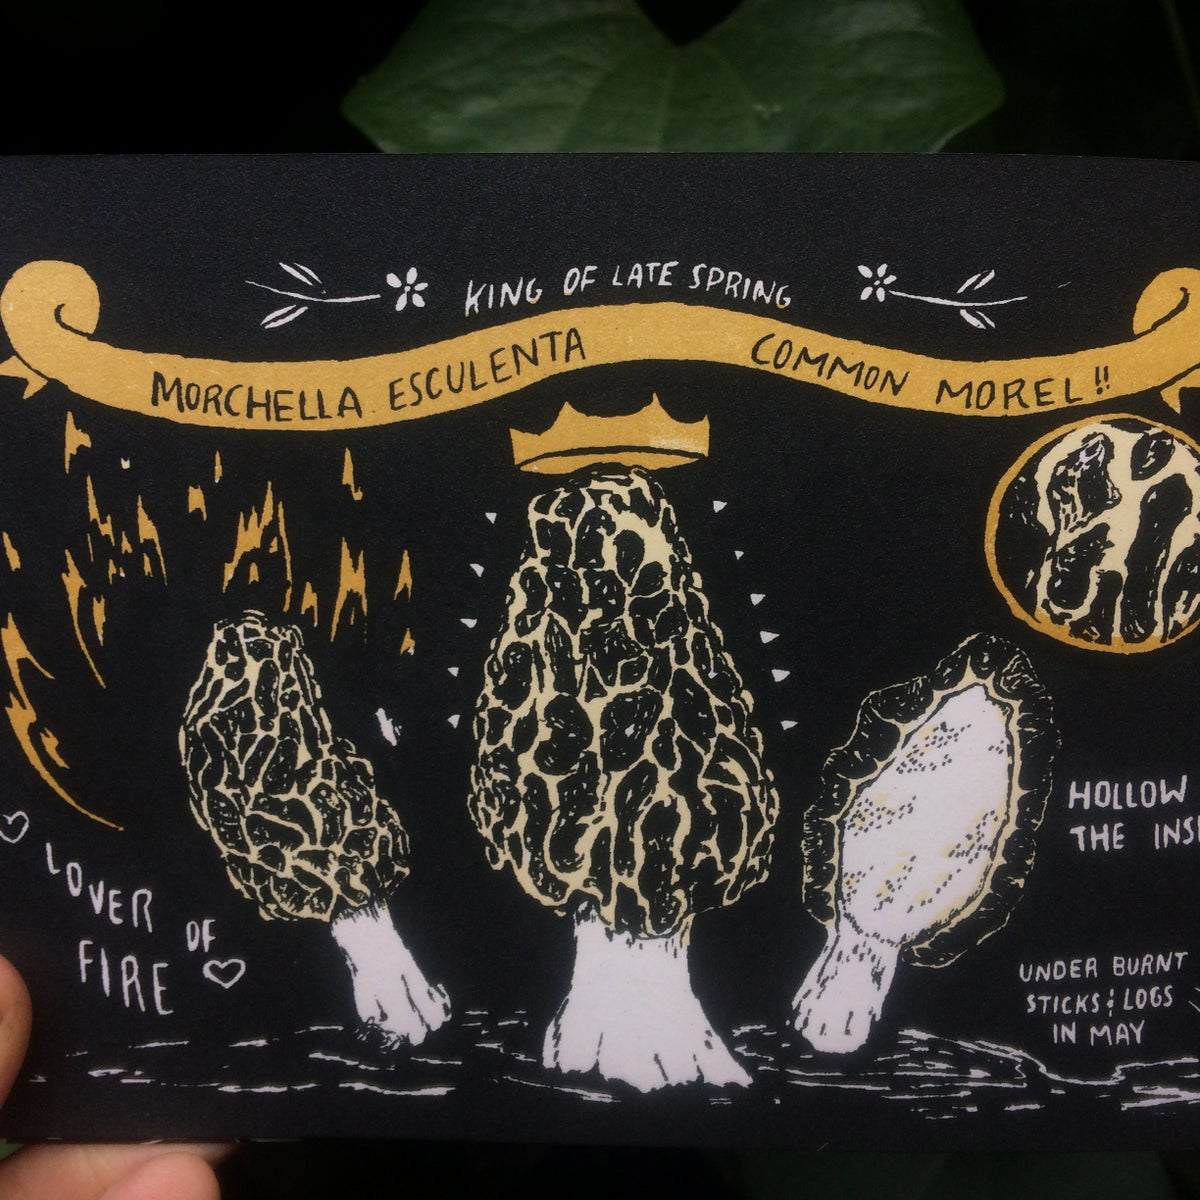 Image of Fungicopia Artist Book: Learning About Edible Mushrooms